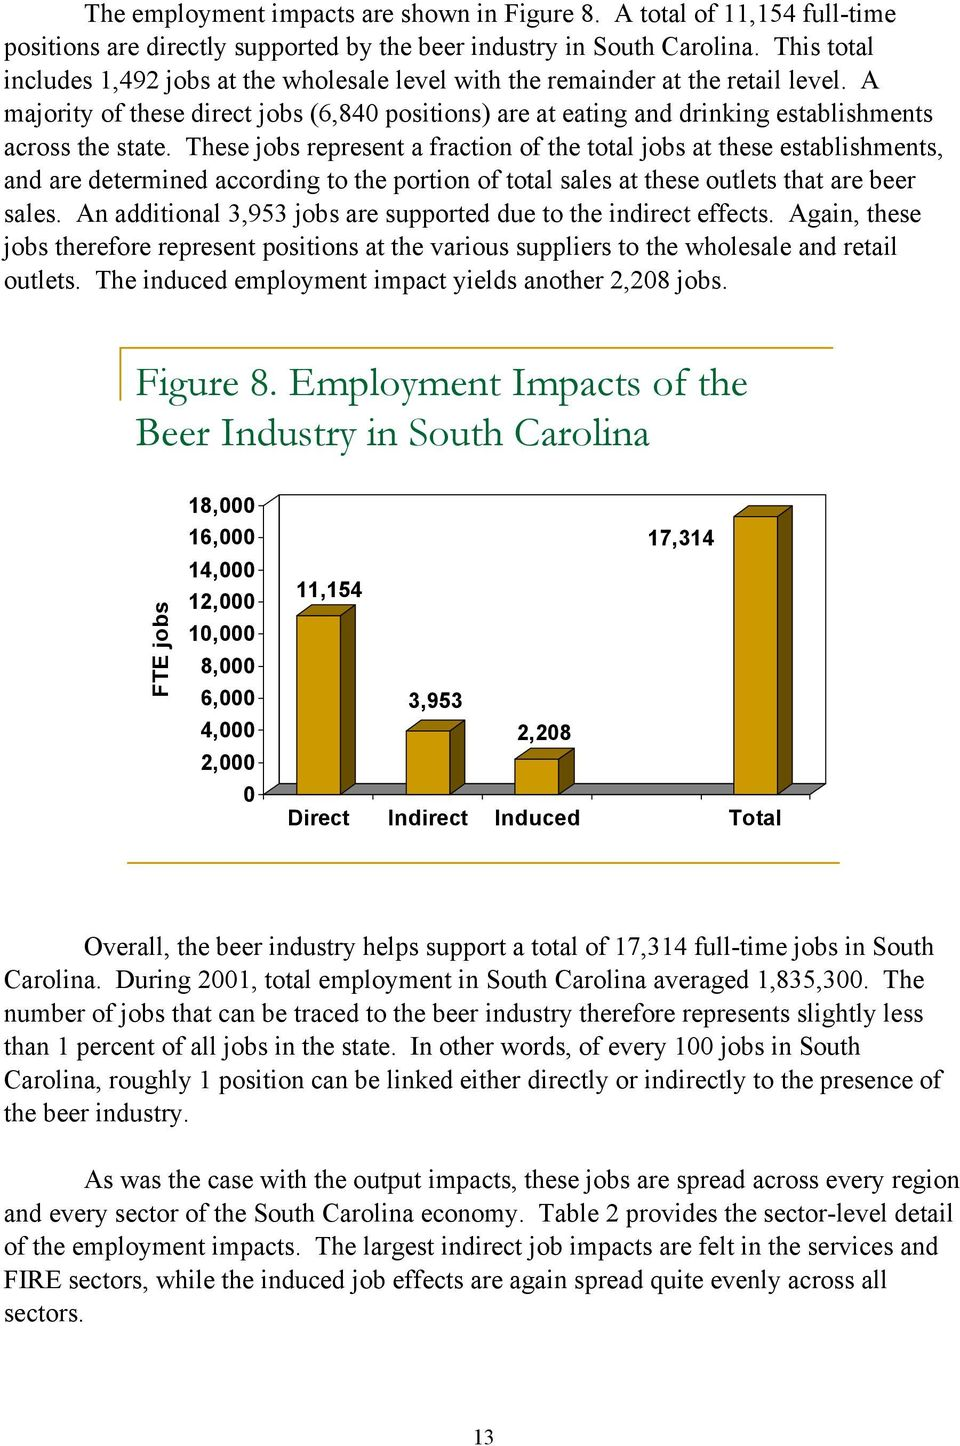 A majority of these direct jobs (6,840 positions) are at eating and drinking establishments across the state.